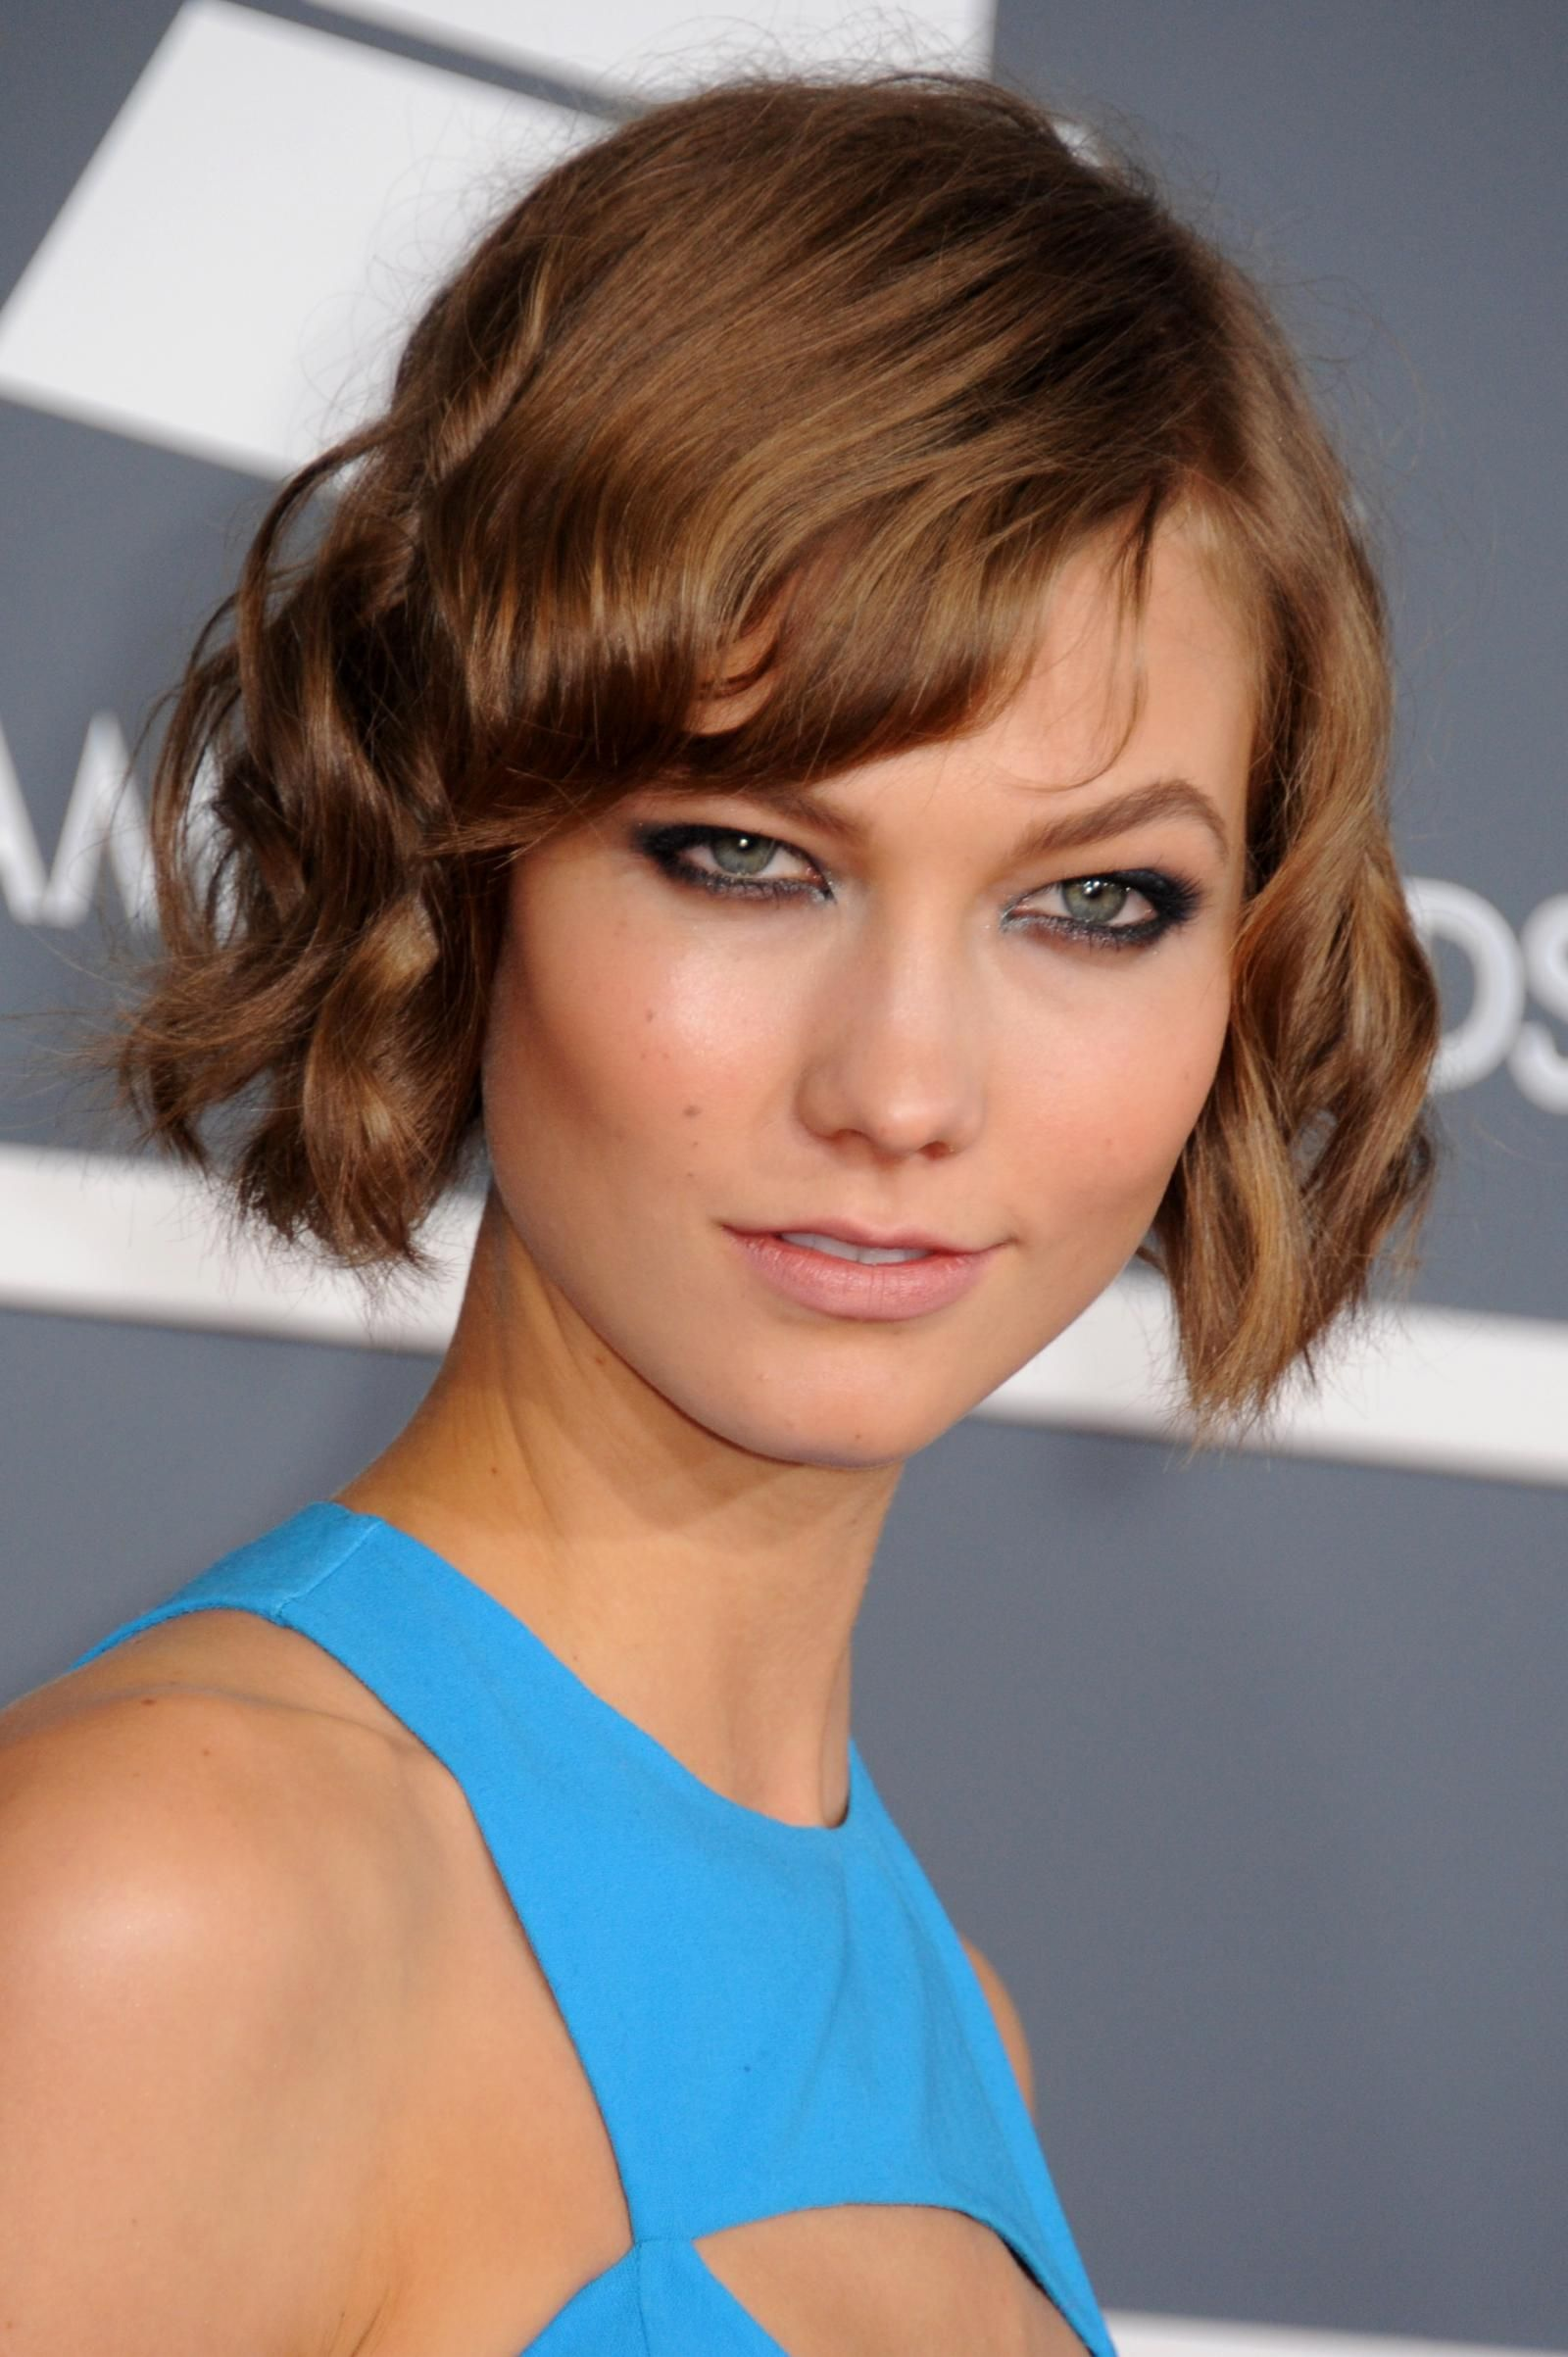 Short hair styles to flatter all faces short hair hair style and bobs